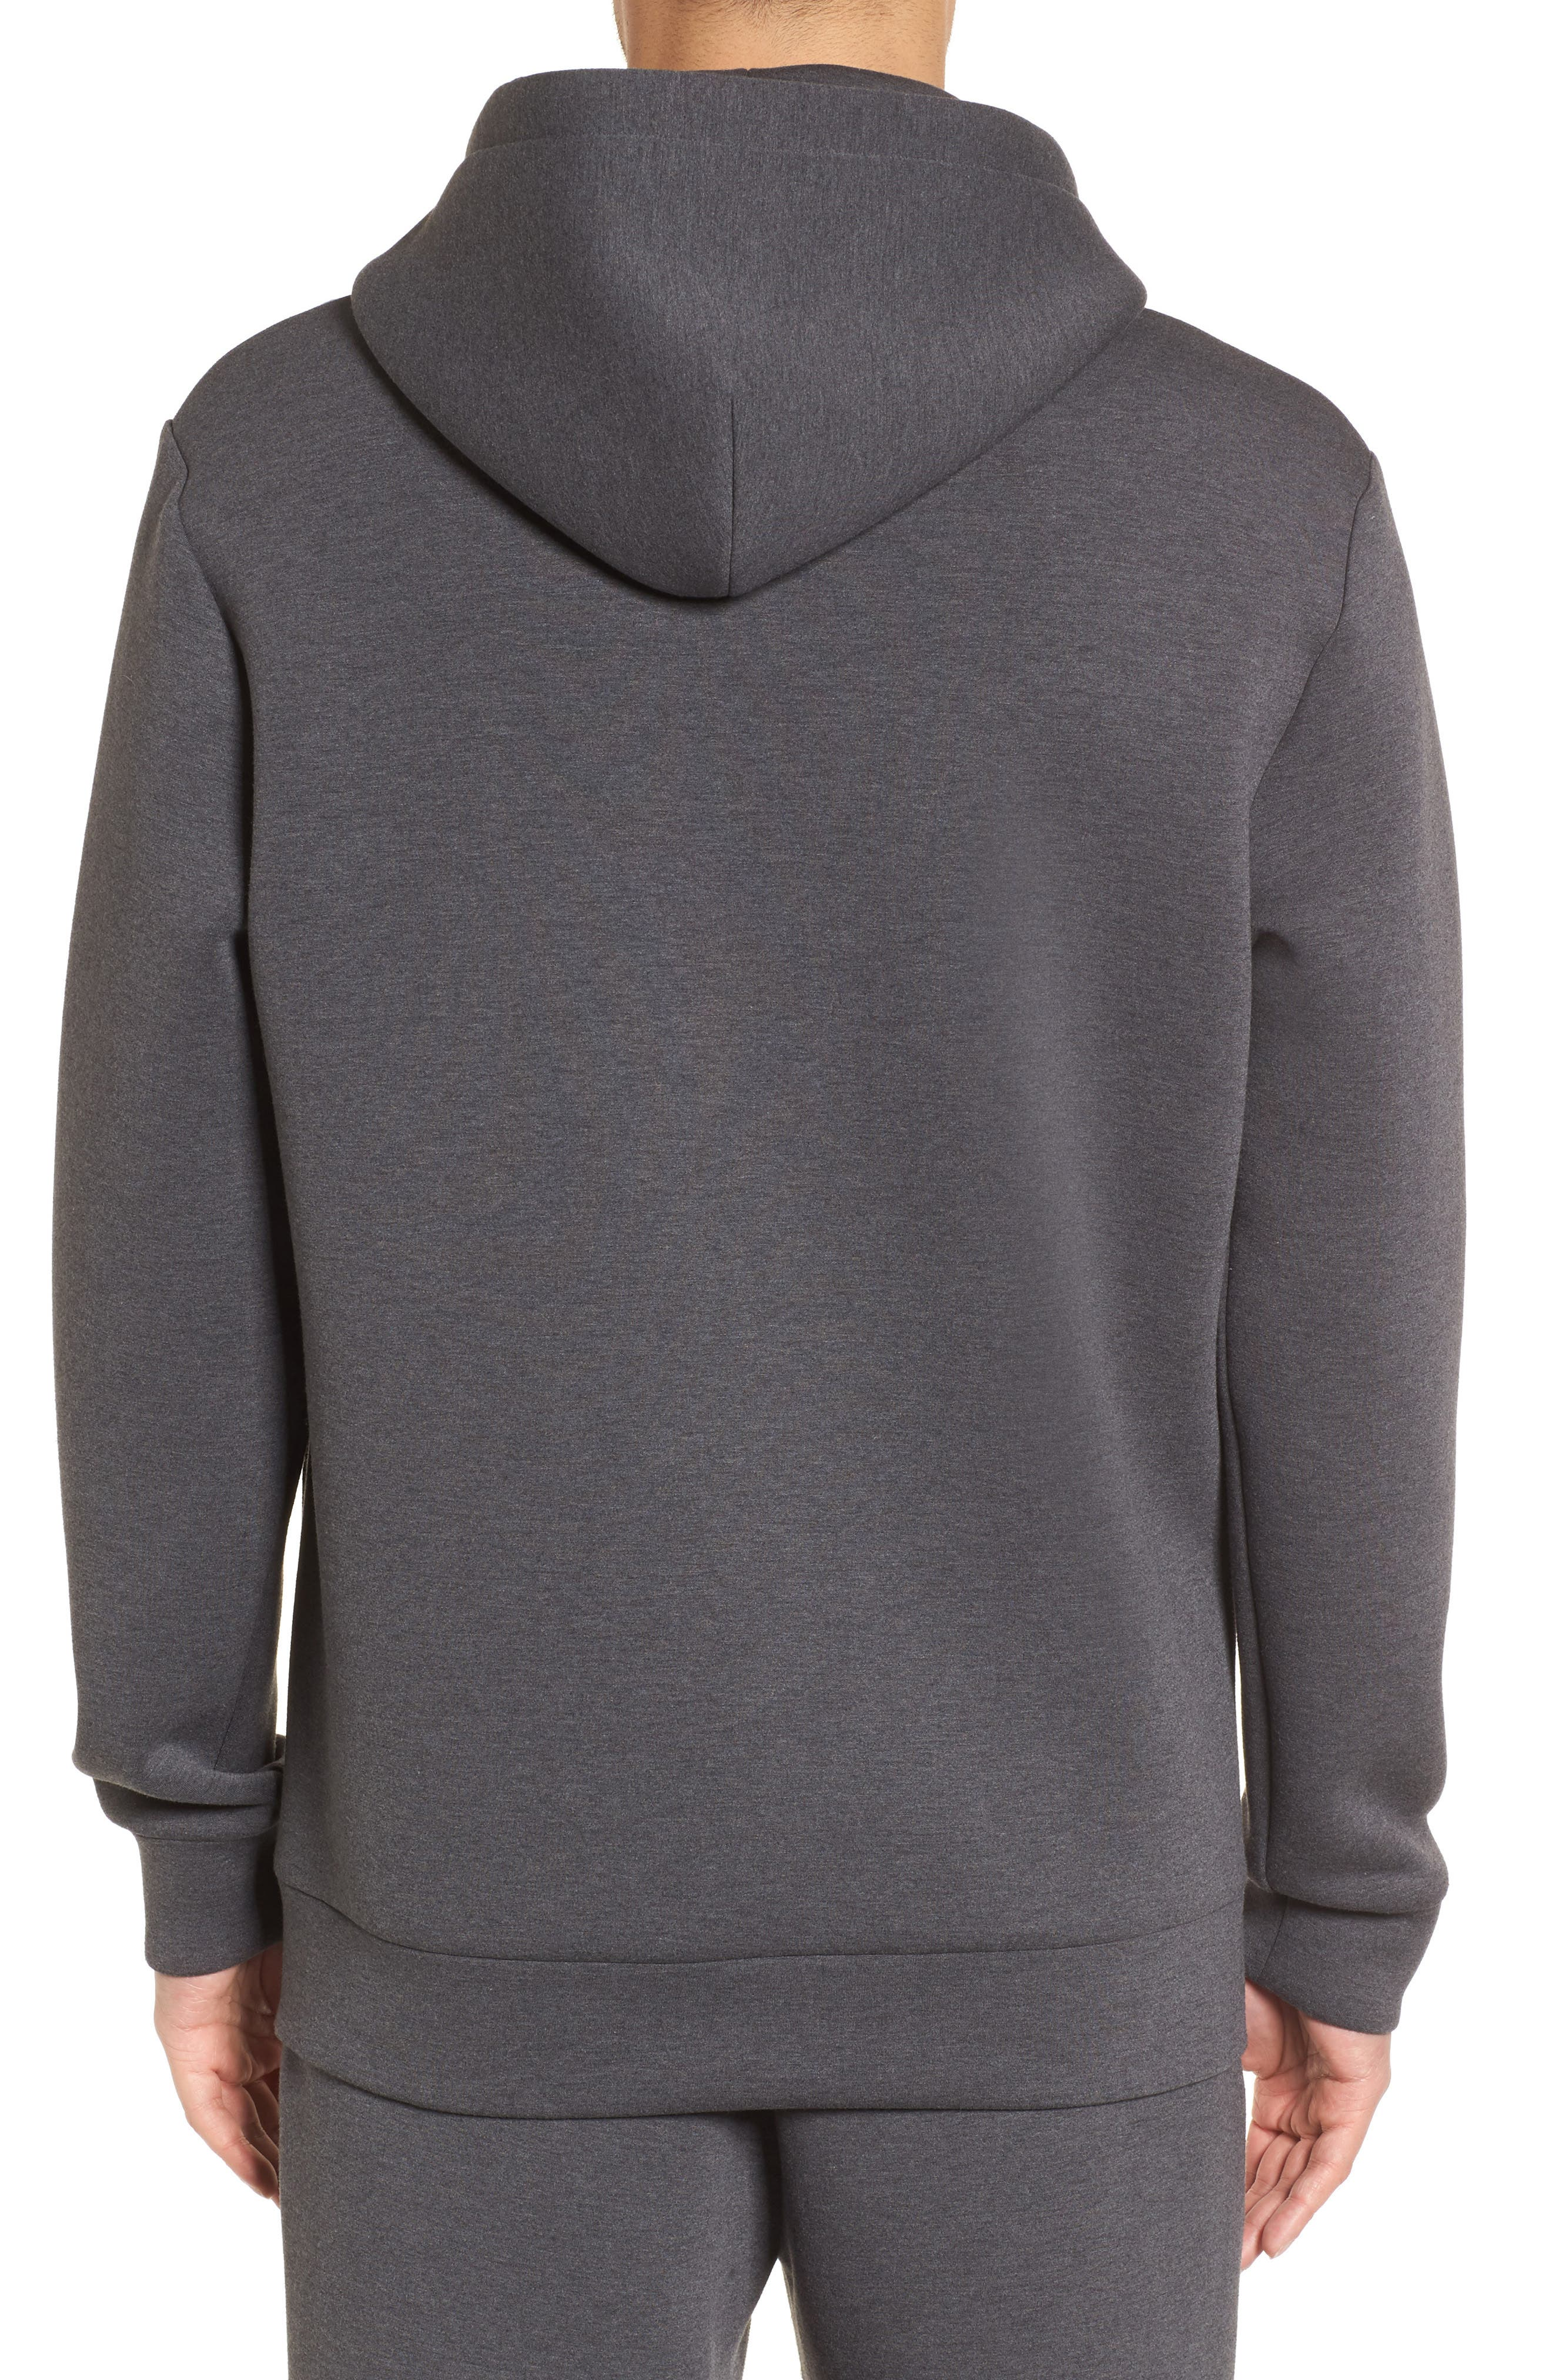 Scuba Pullover Hoodie,                             Alternate thumbnail 2, color,                             Charcoal Heather